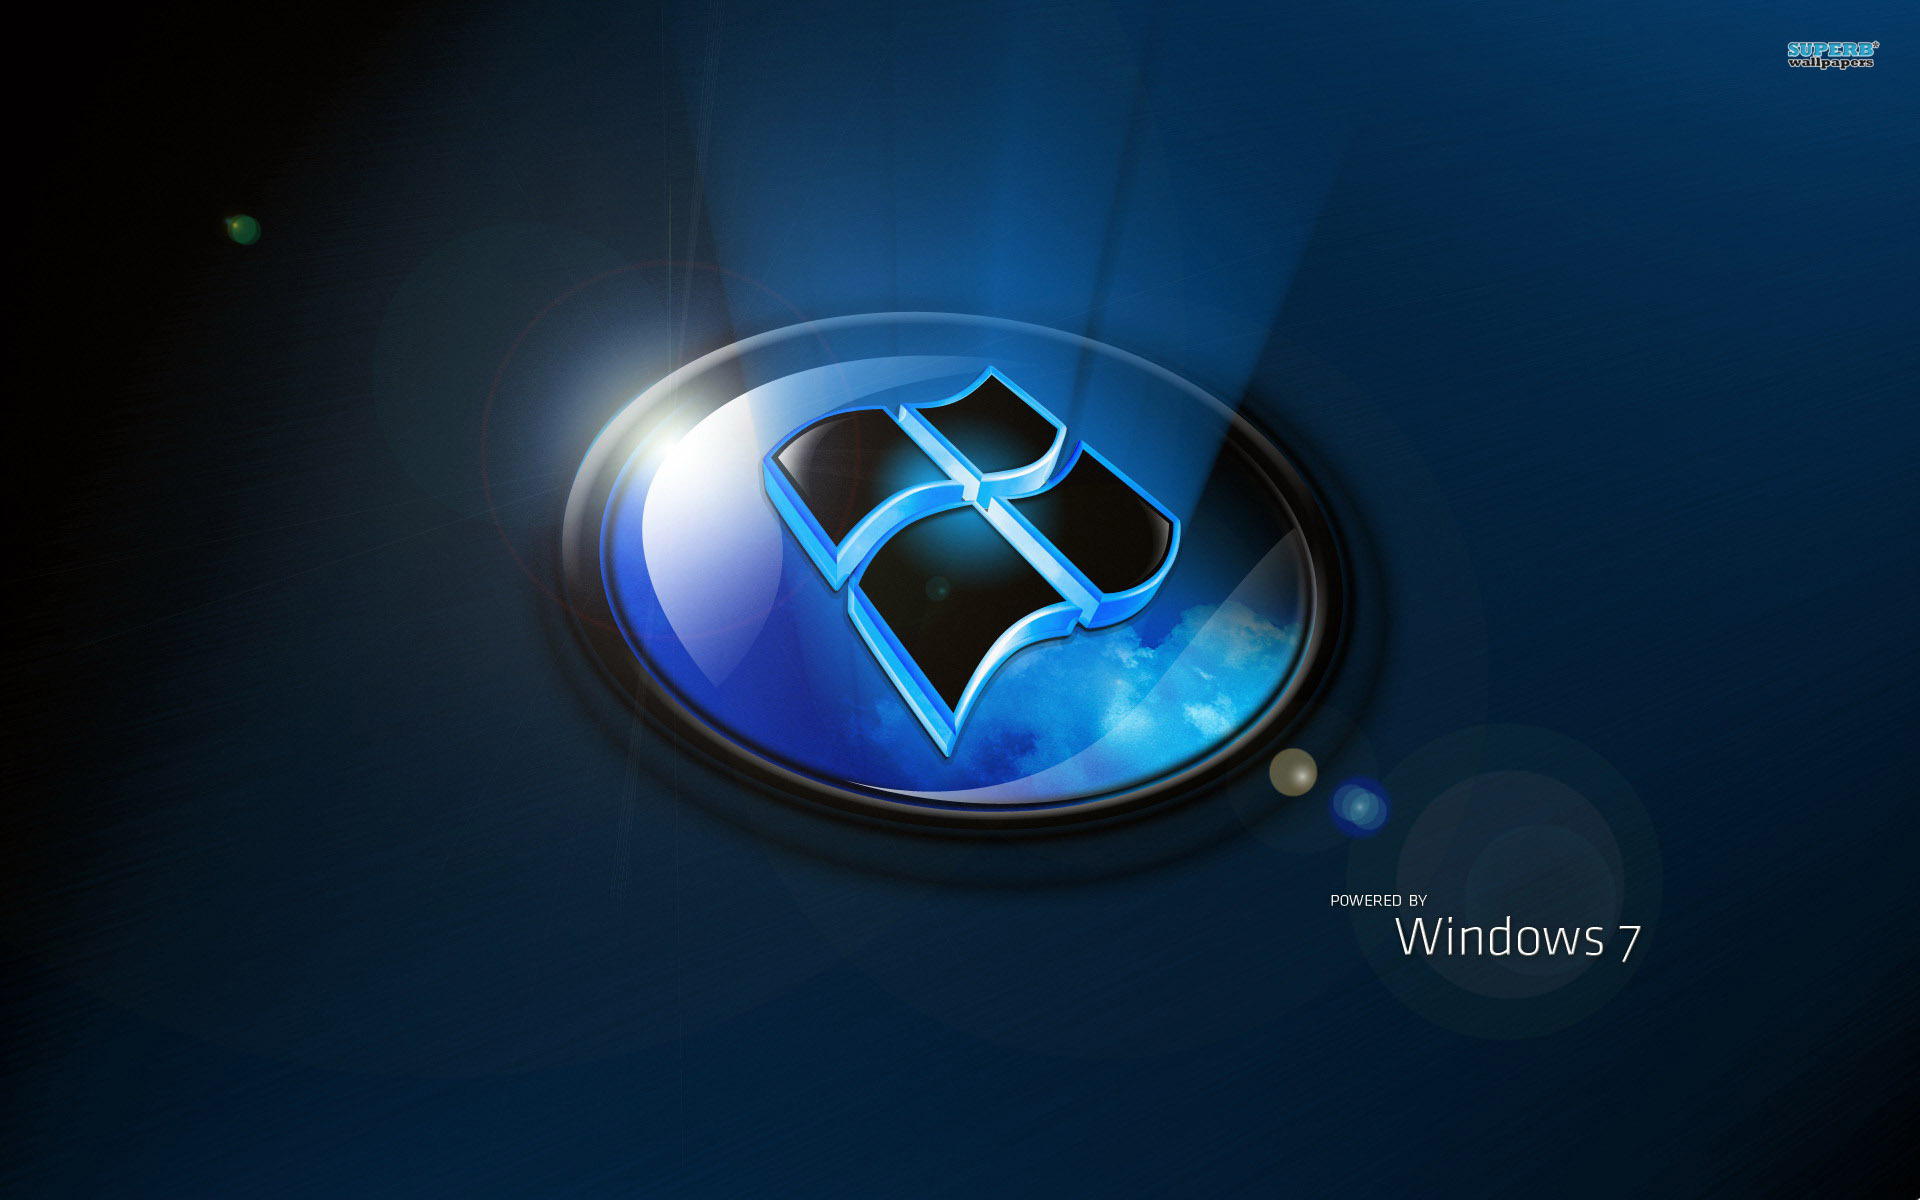 windows 7 wallpapers hd (32 wallpapers) – adorable wallpapers